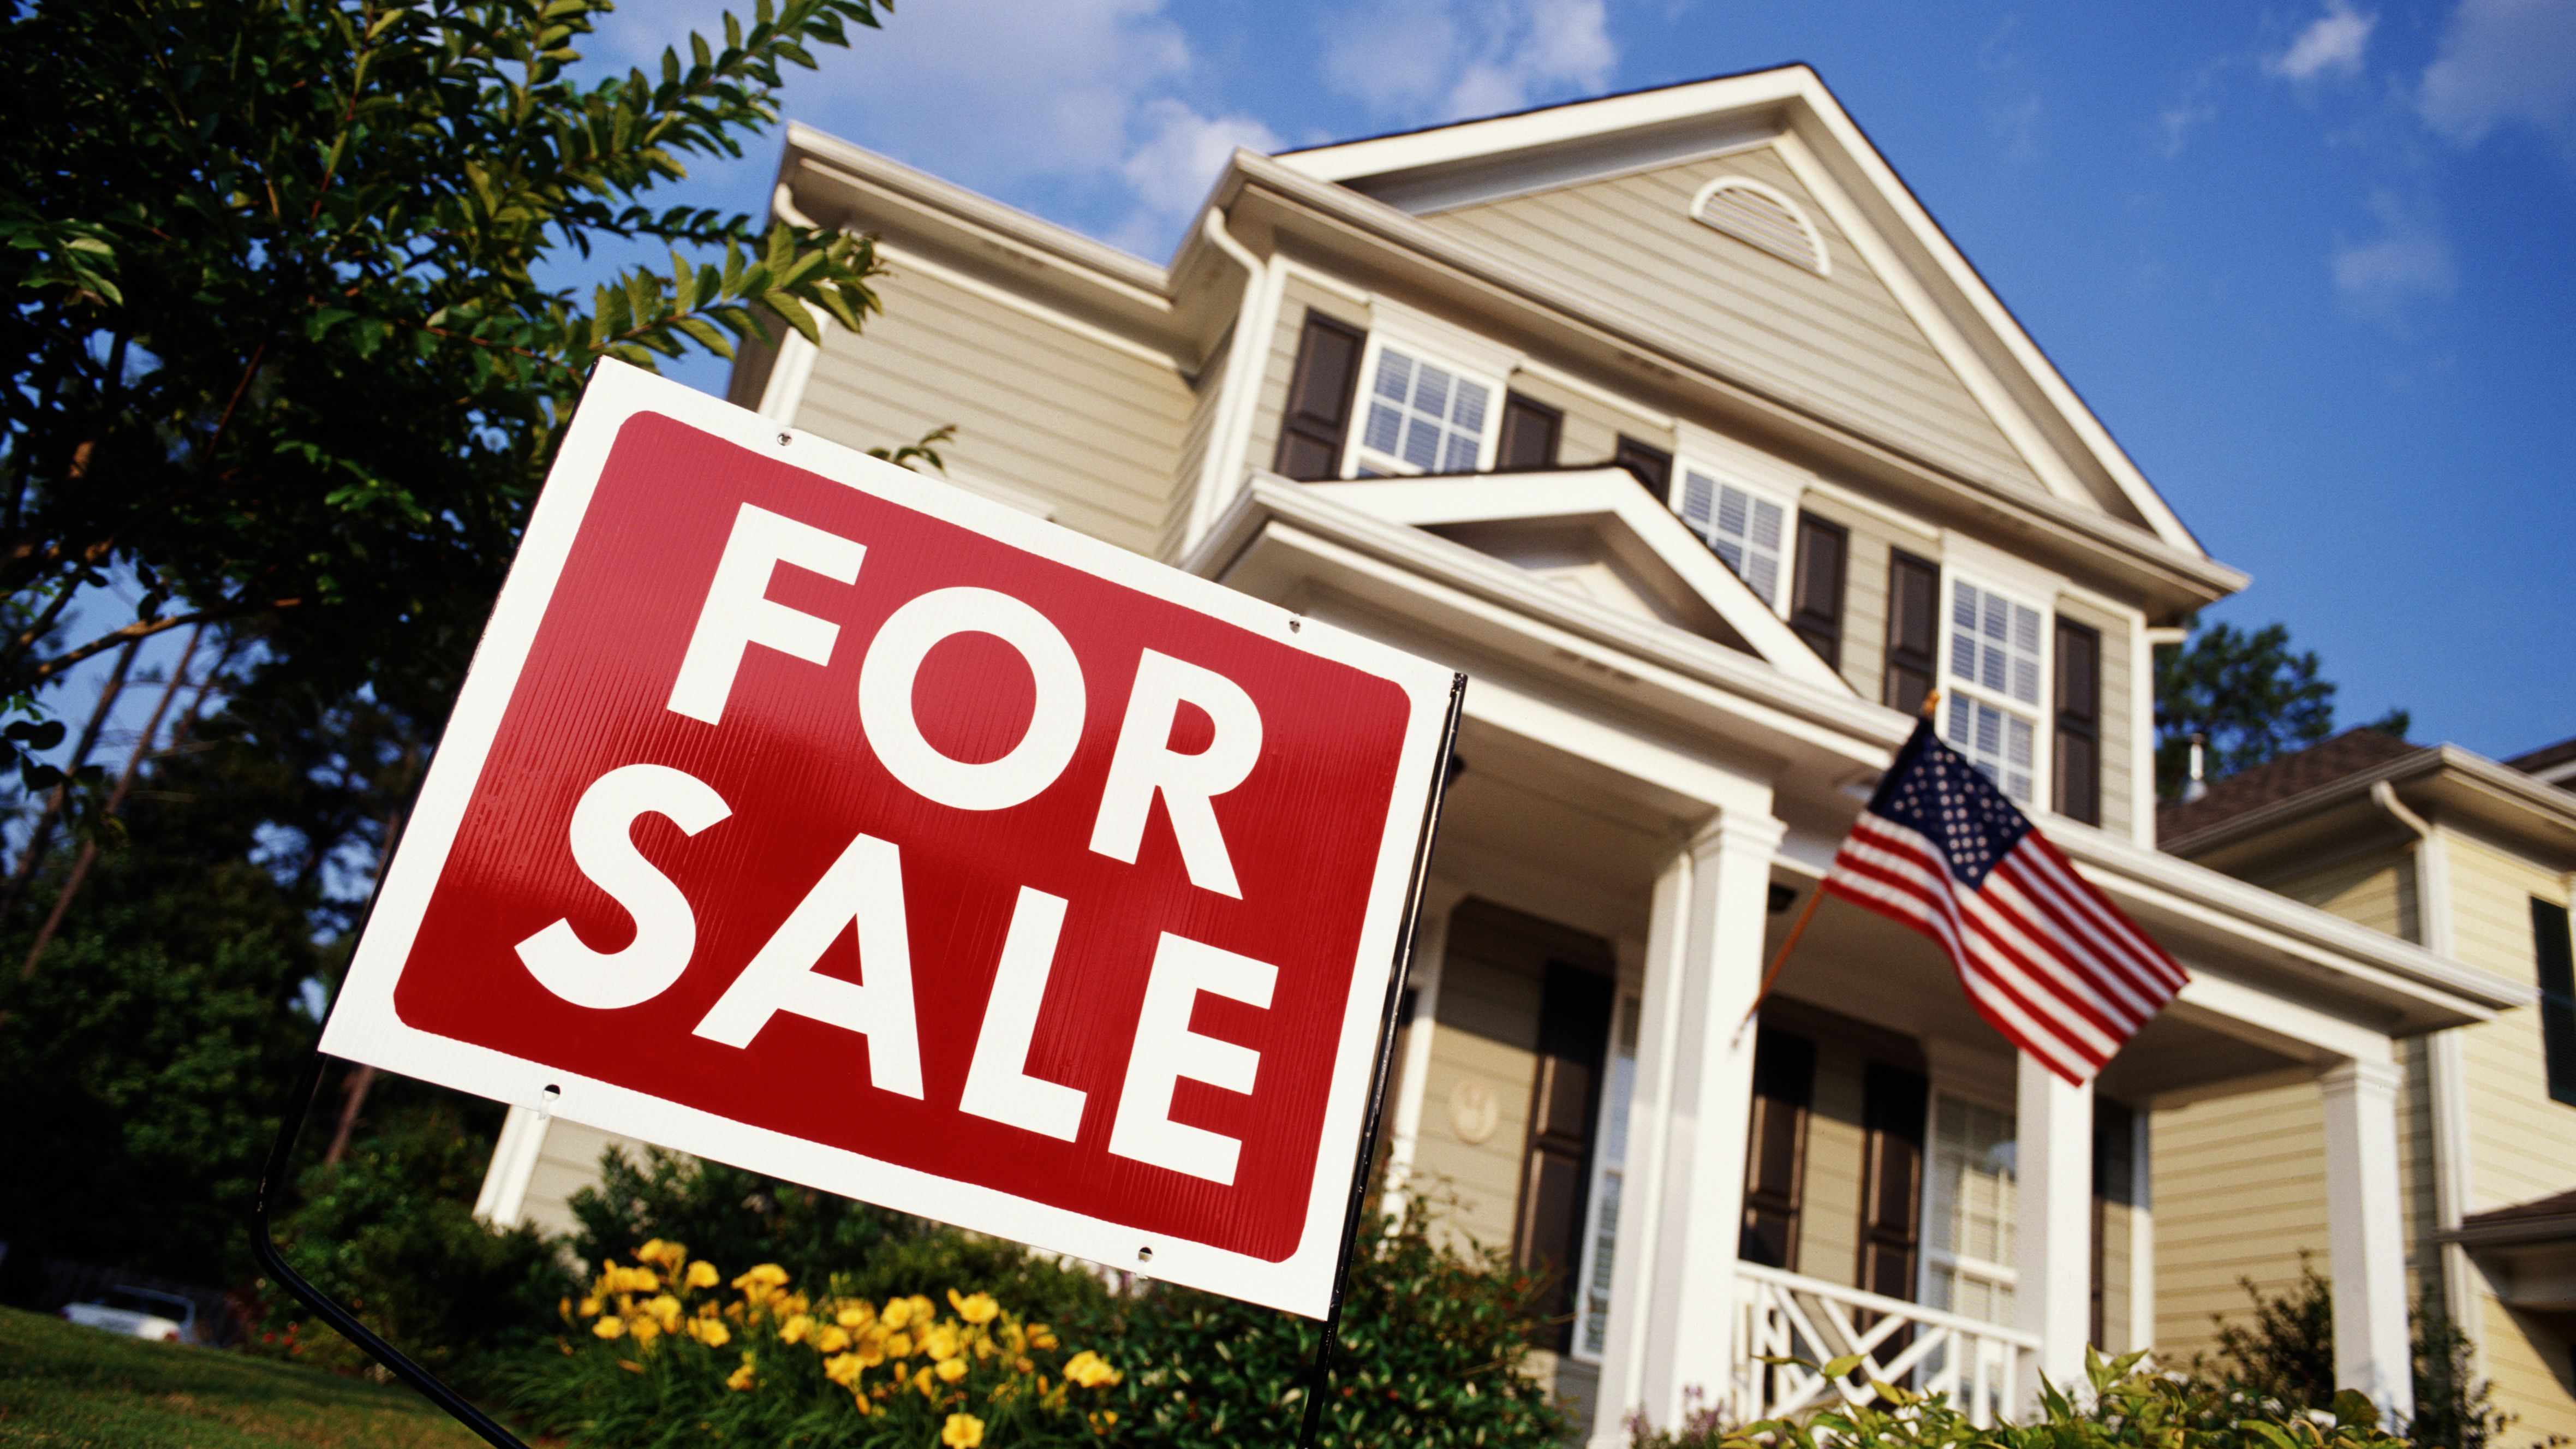 house-with-american-flag-and--for-sale--sign--low-angle-view-200066800-001-5b8727b346e0fb00253e9667.jpg